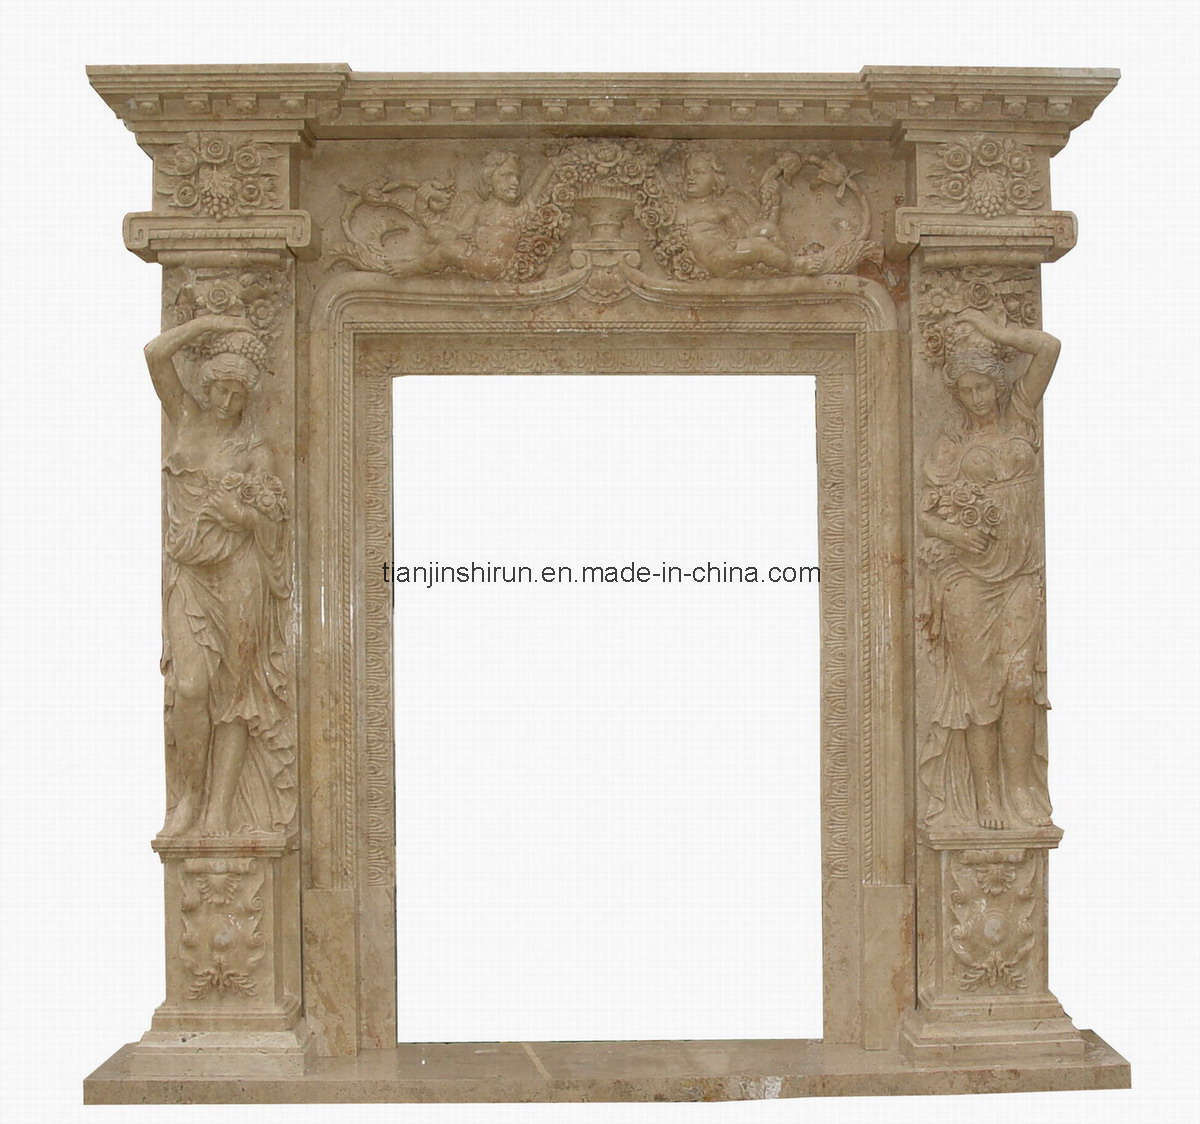 China Stone Door Surround (HY280) Photos & Pictures - Made-in-china.com